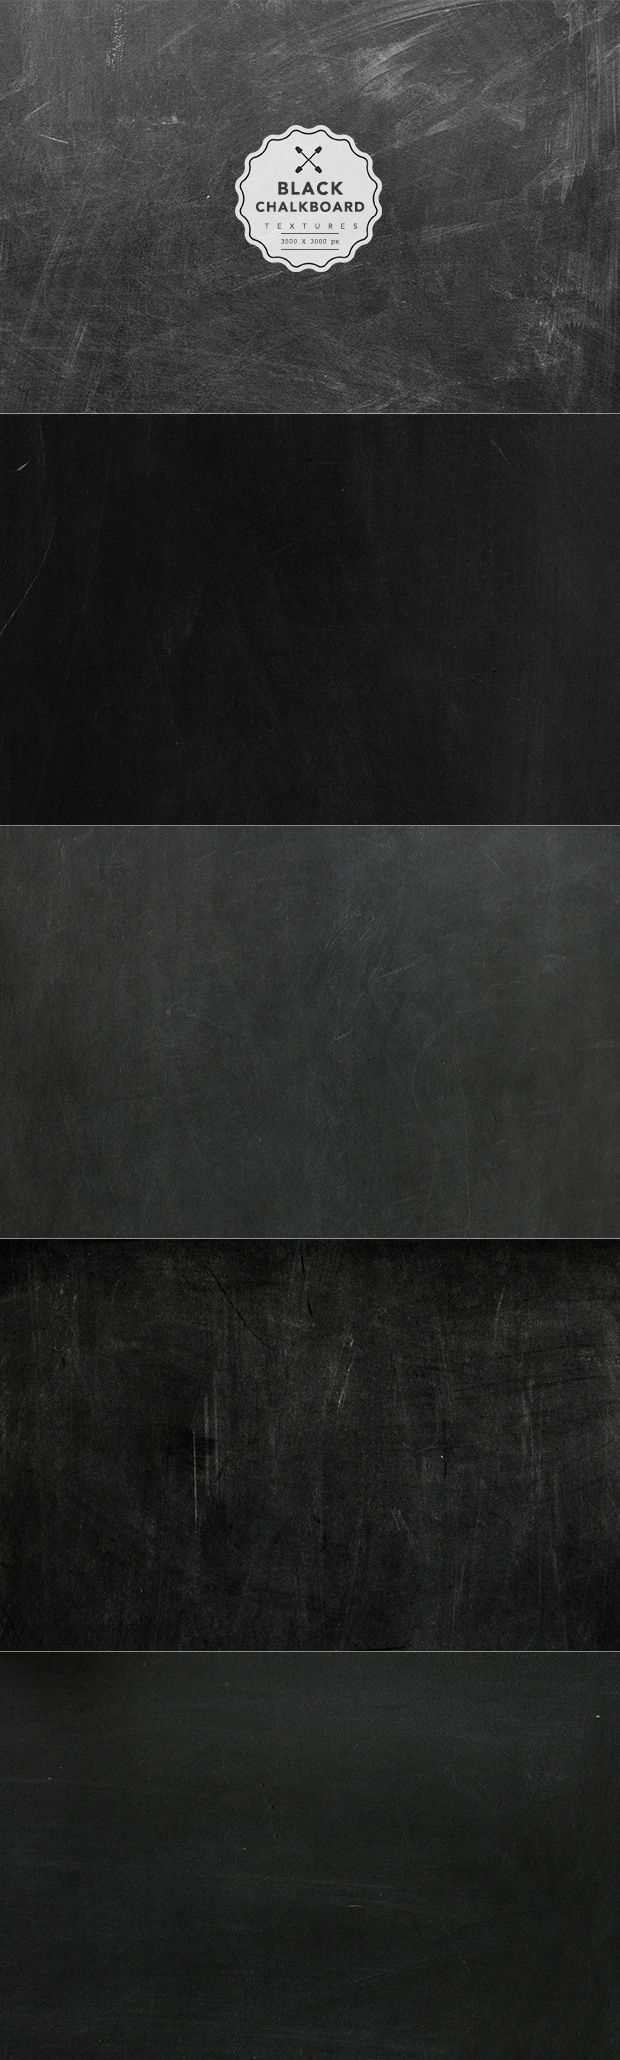 Extremely Useful Texture Black Chalkboard Set